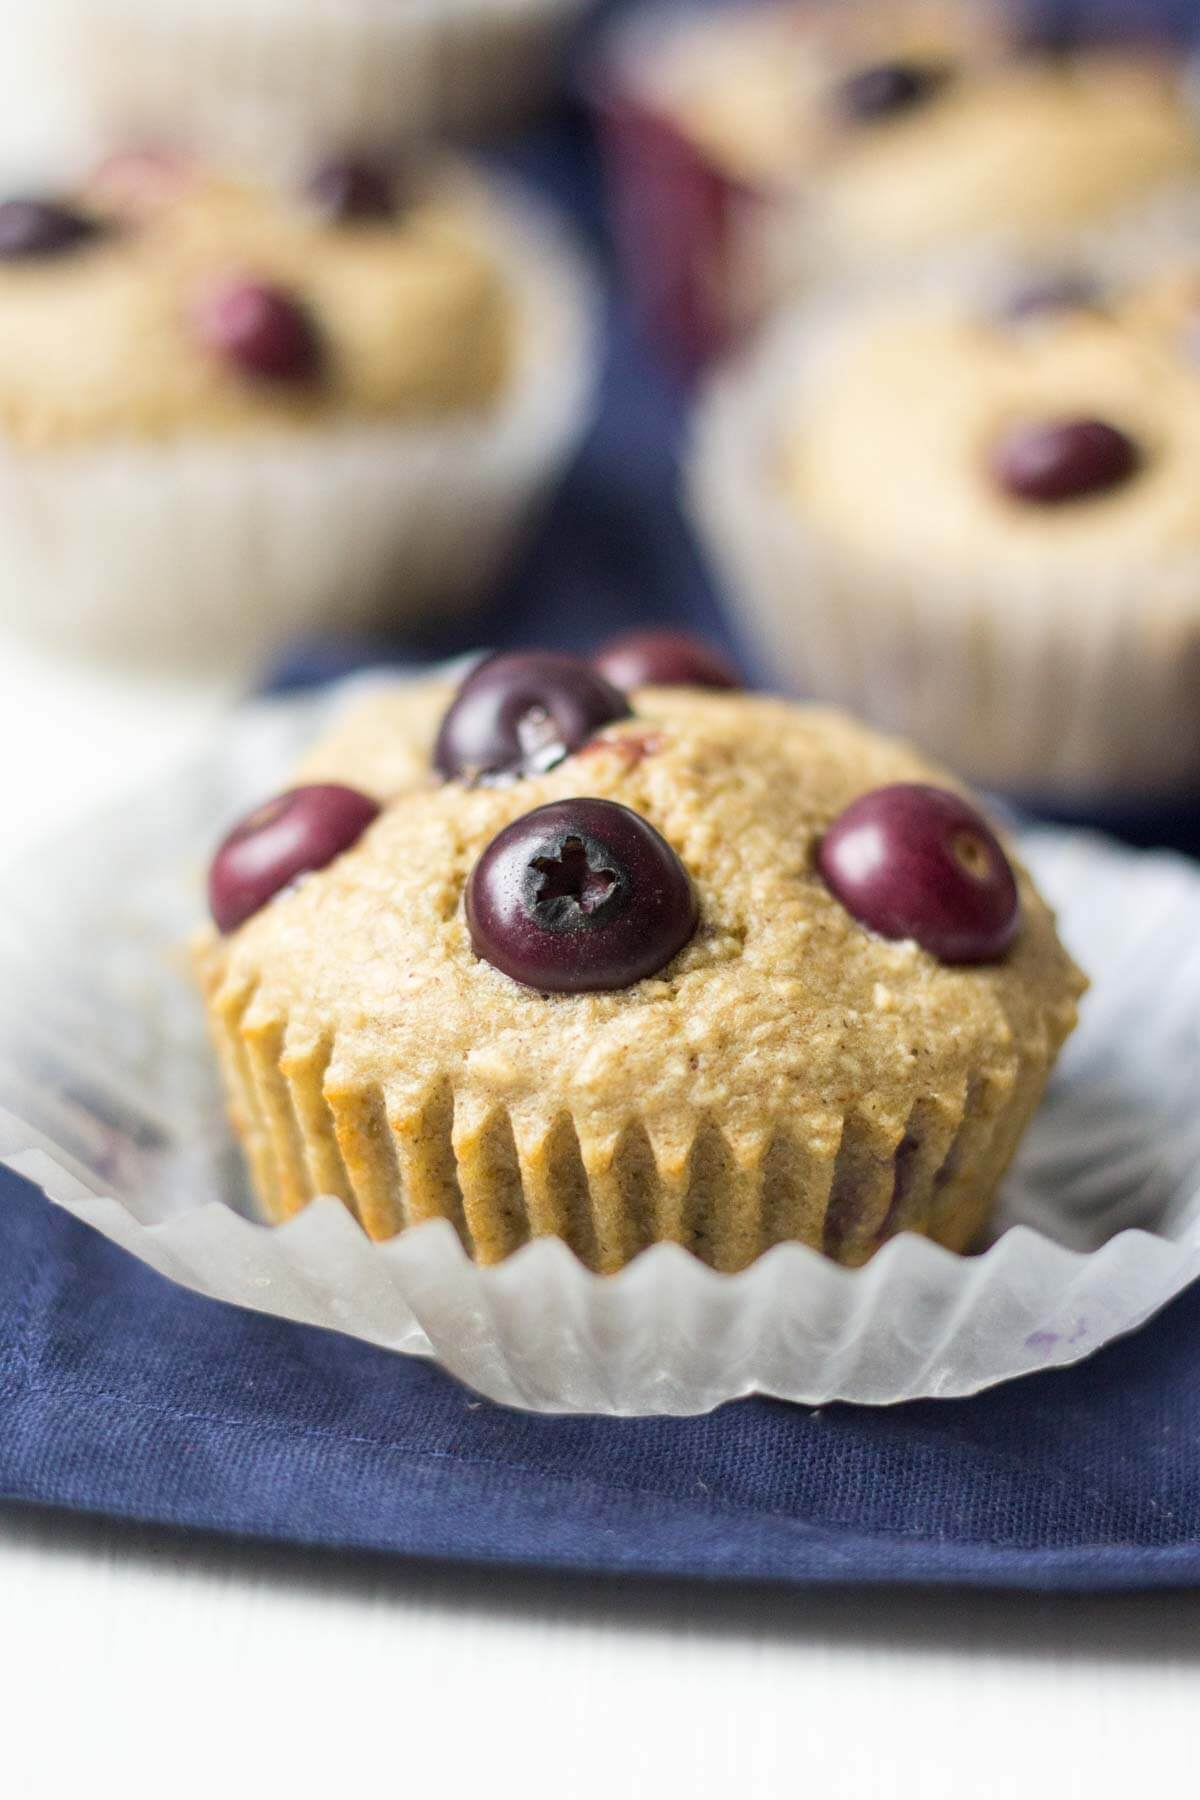 Easy to make and full of good-for-you ingredients, these triple berry blender muffins will show you just how easy and delicious breakfast can be. You will love the oats, blueberries, maple syrup and jam inside these easy muffins!